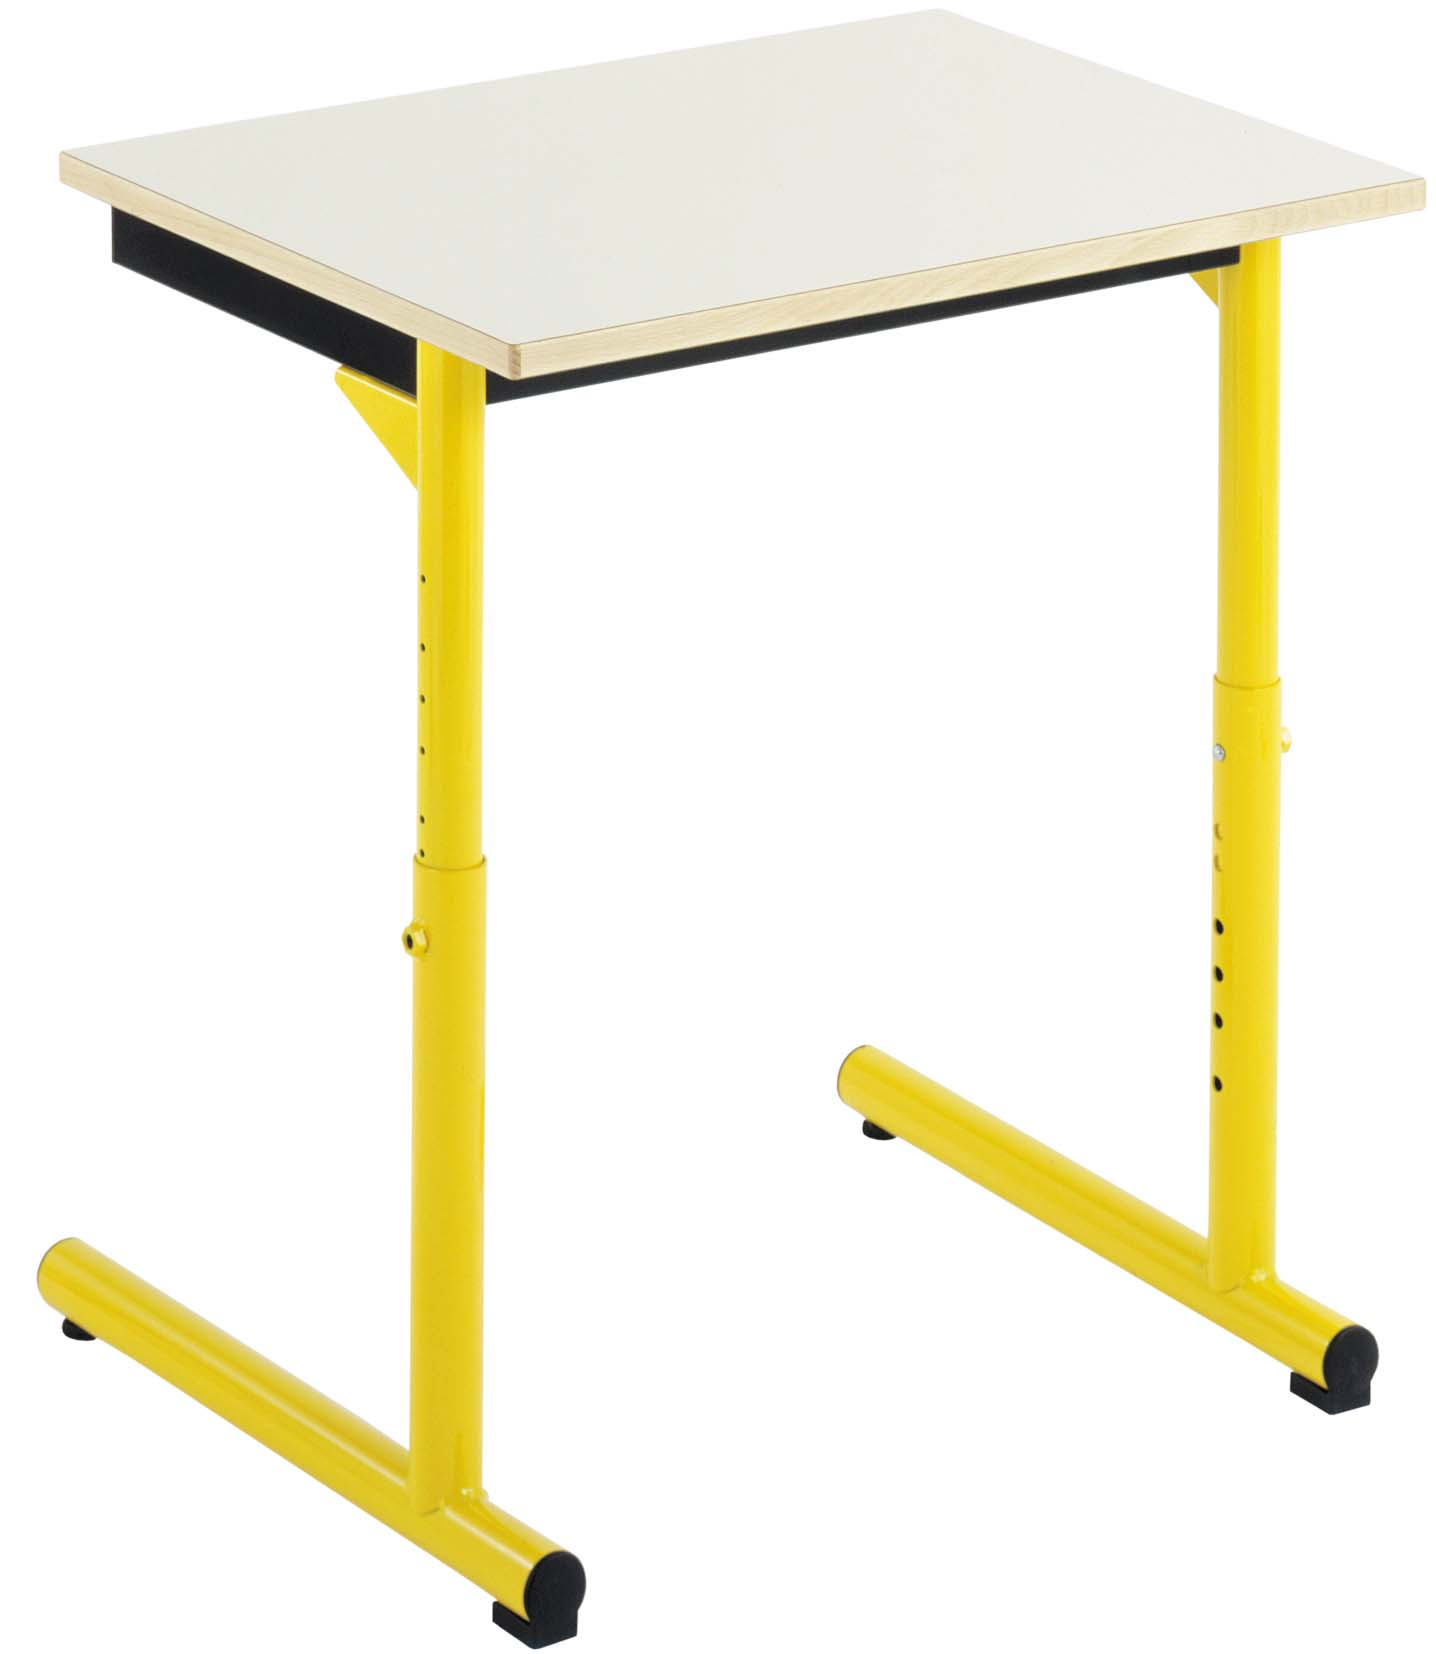 Table scolaire réglable START 2